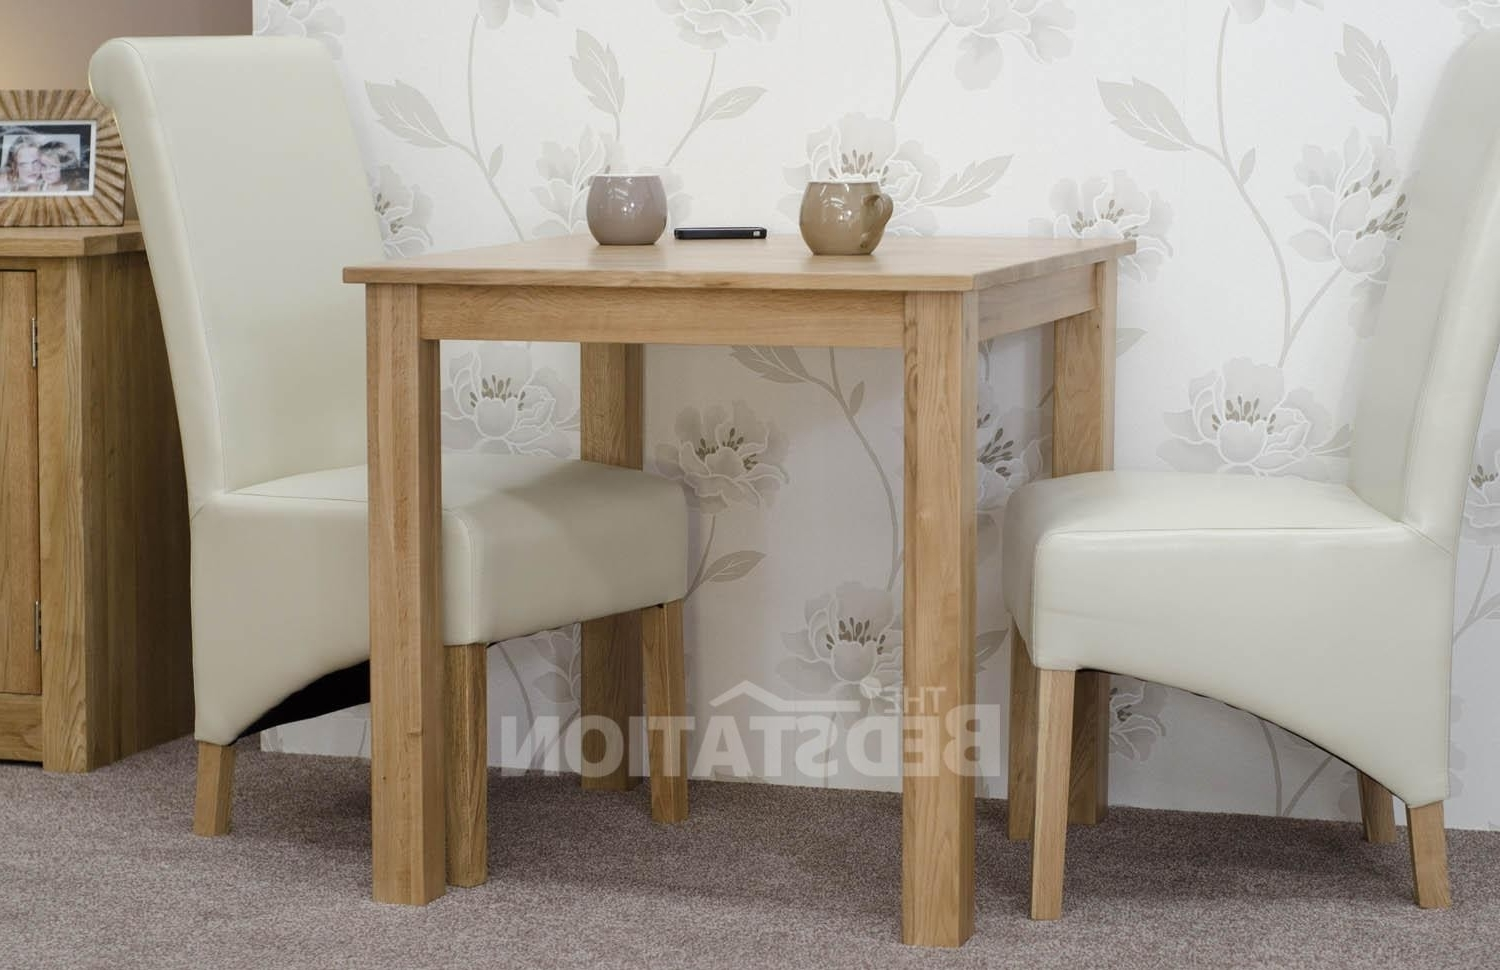 """Square Oak Dining Tables Inside Most Current Homestyle Elegance Oak 2'6"""" X 2'6"""" Square Dining Table From The Bed (View 17 of 25)"""